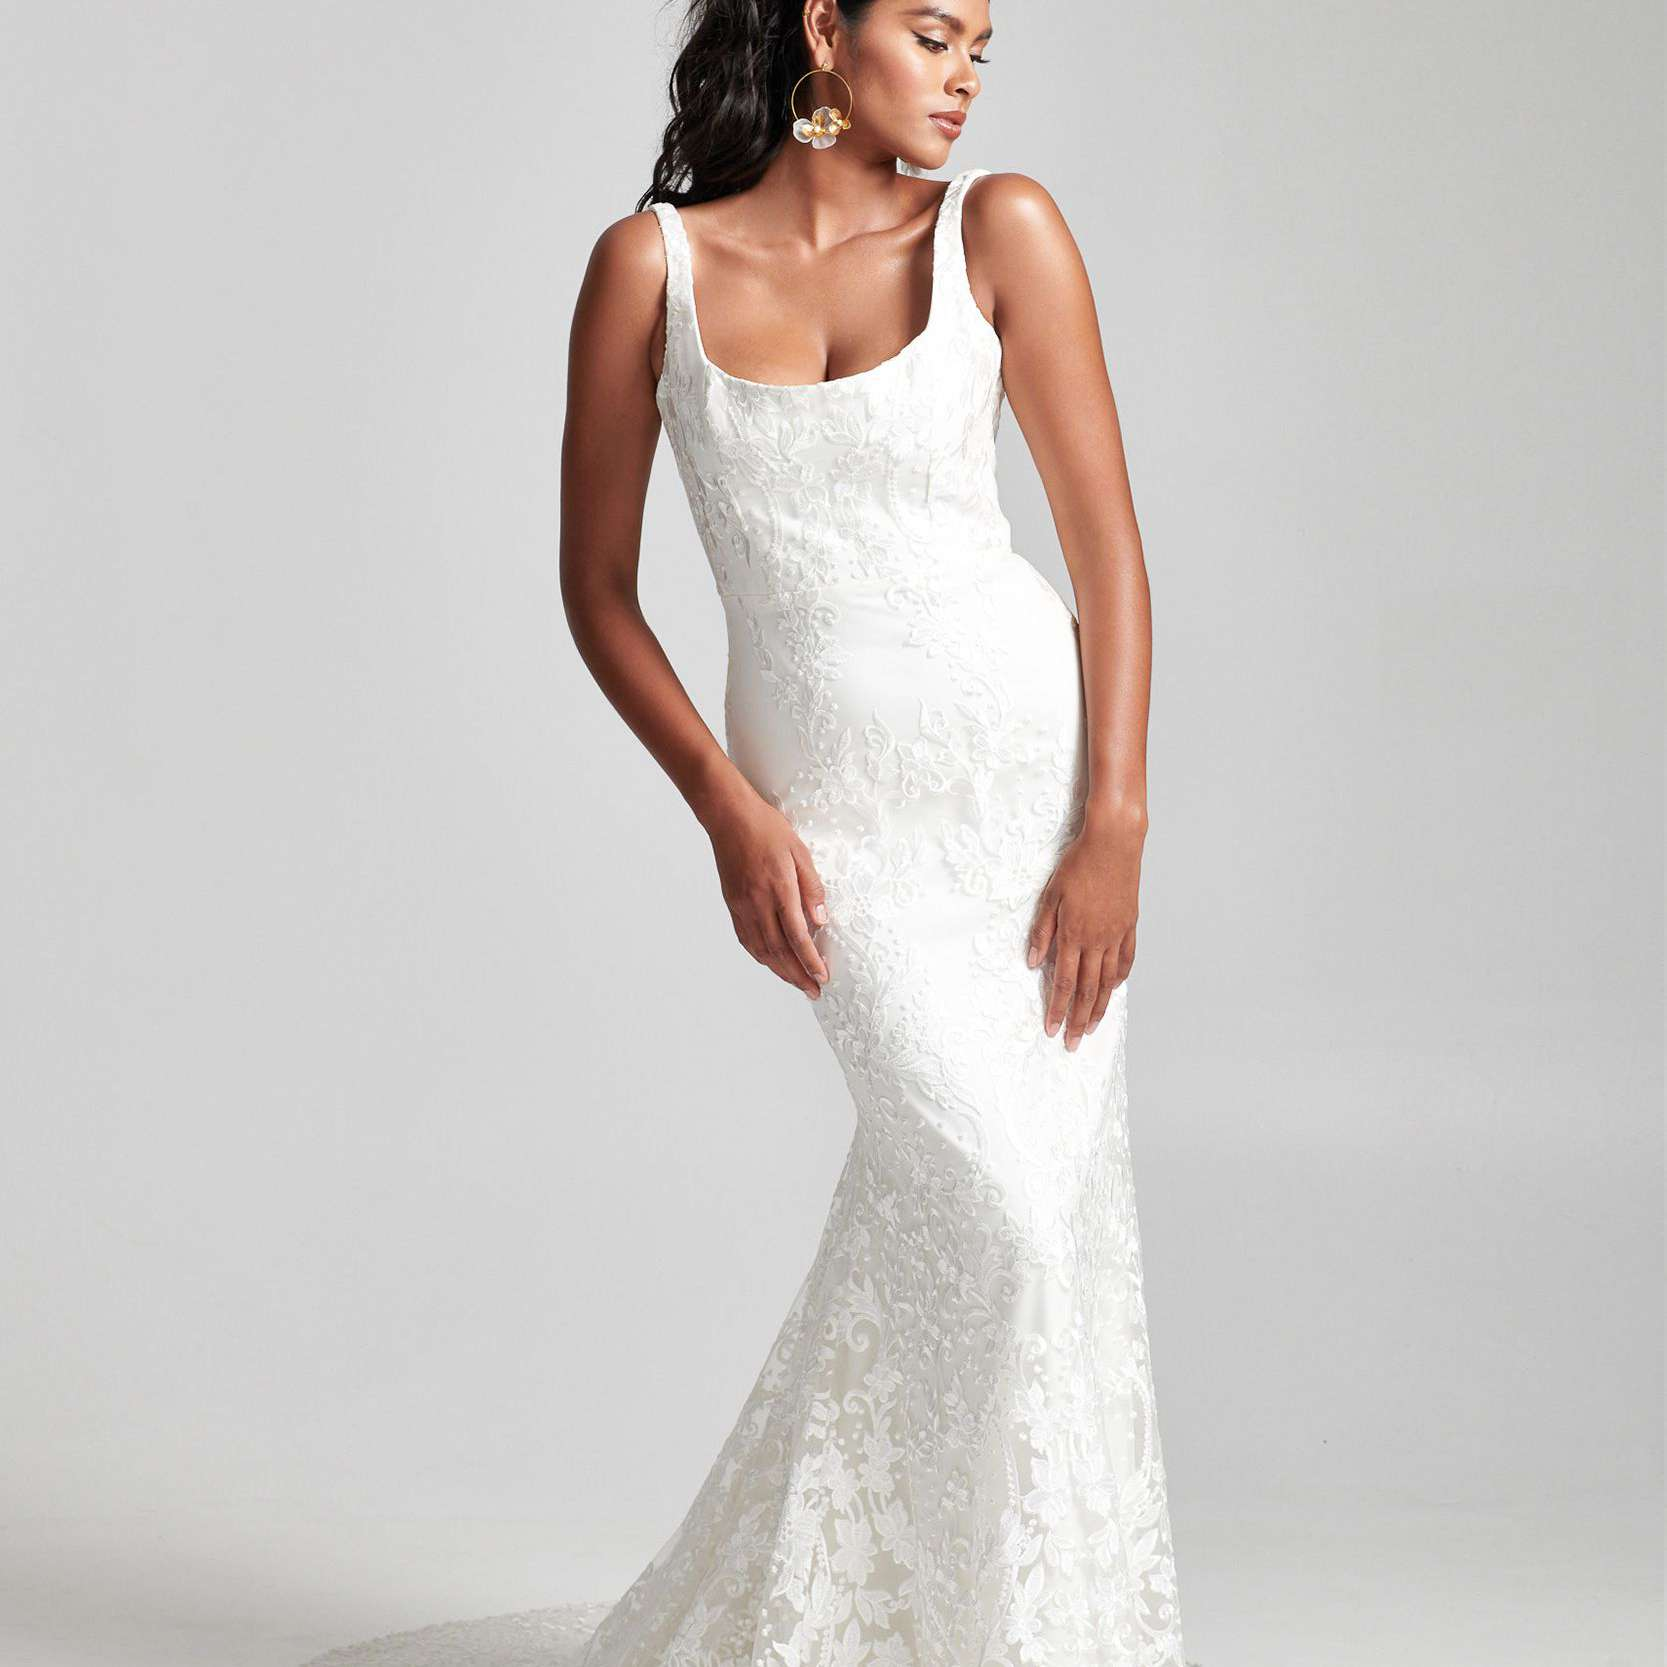 Model in sleeveless lace wedding dress with scoop neckline